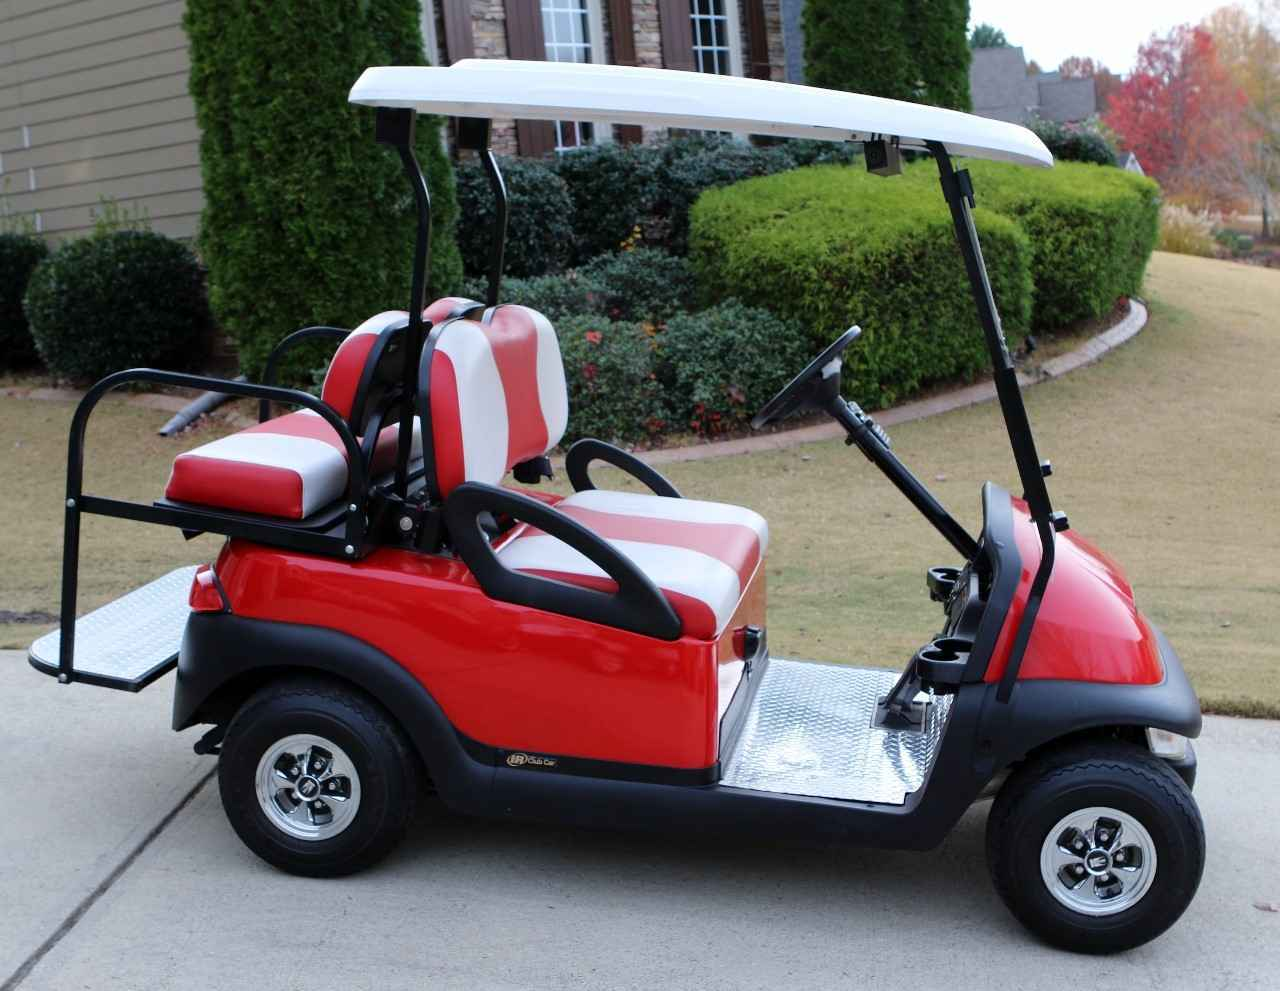 used 2006 club car electric atvs for sale in georgia on atv trades. Black Bedroom Furniture Sets. Home Design Ideas